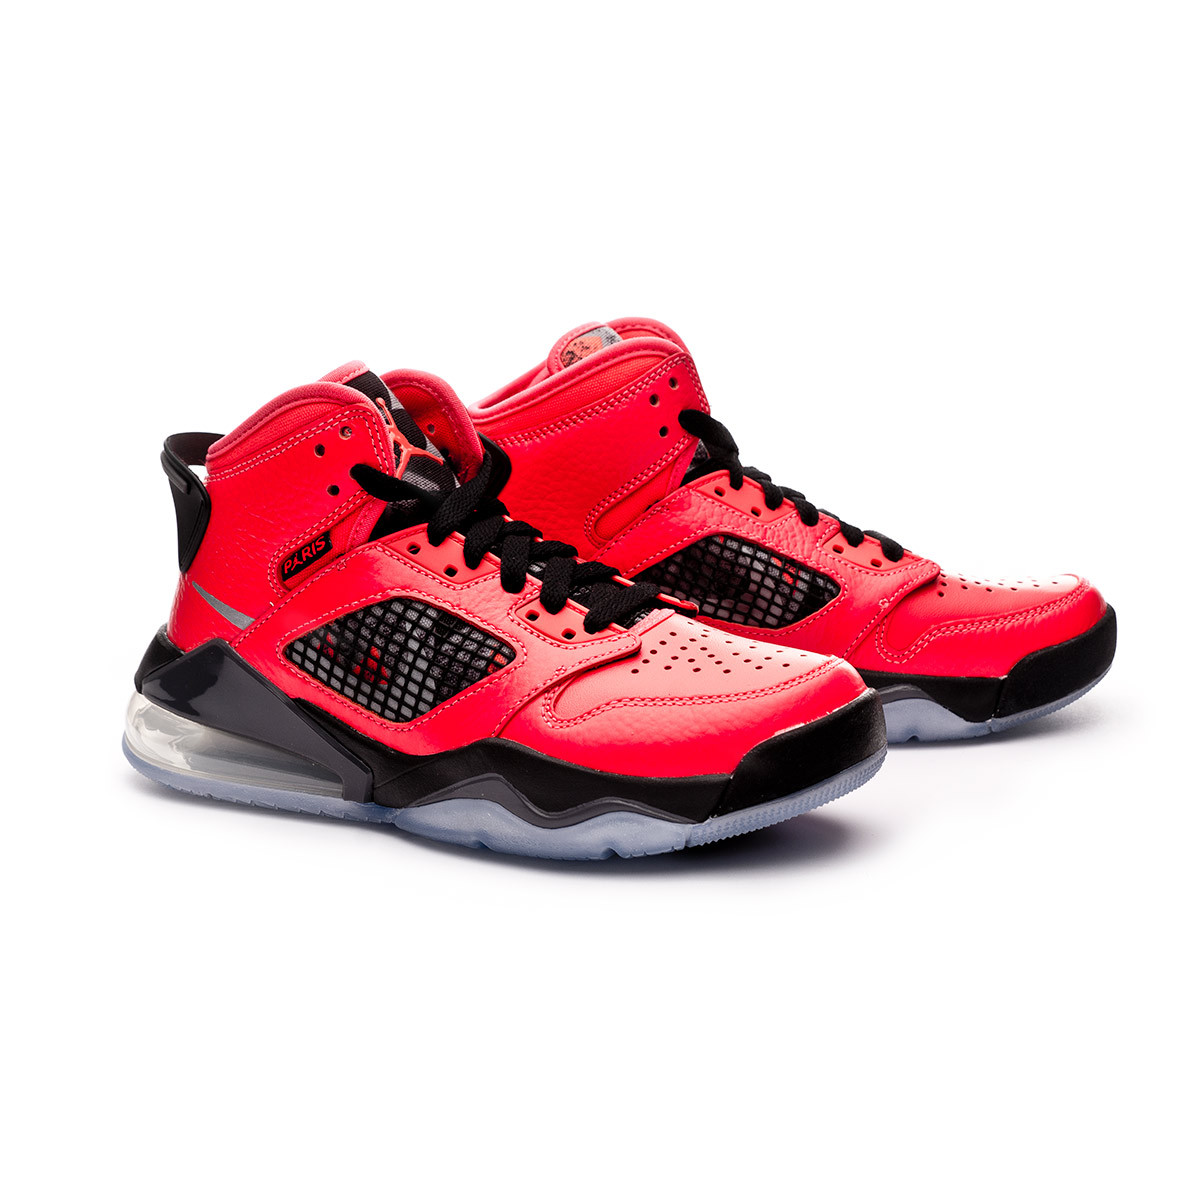 0f51c41c1 Zapatilla Paris Saint-Germain Jordan Mars 270 Niño Infrared-Reflect  silver-Black